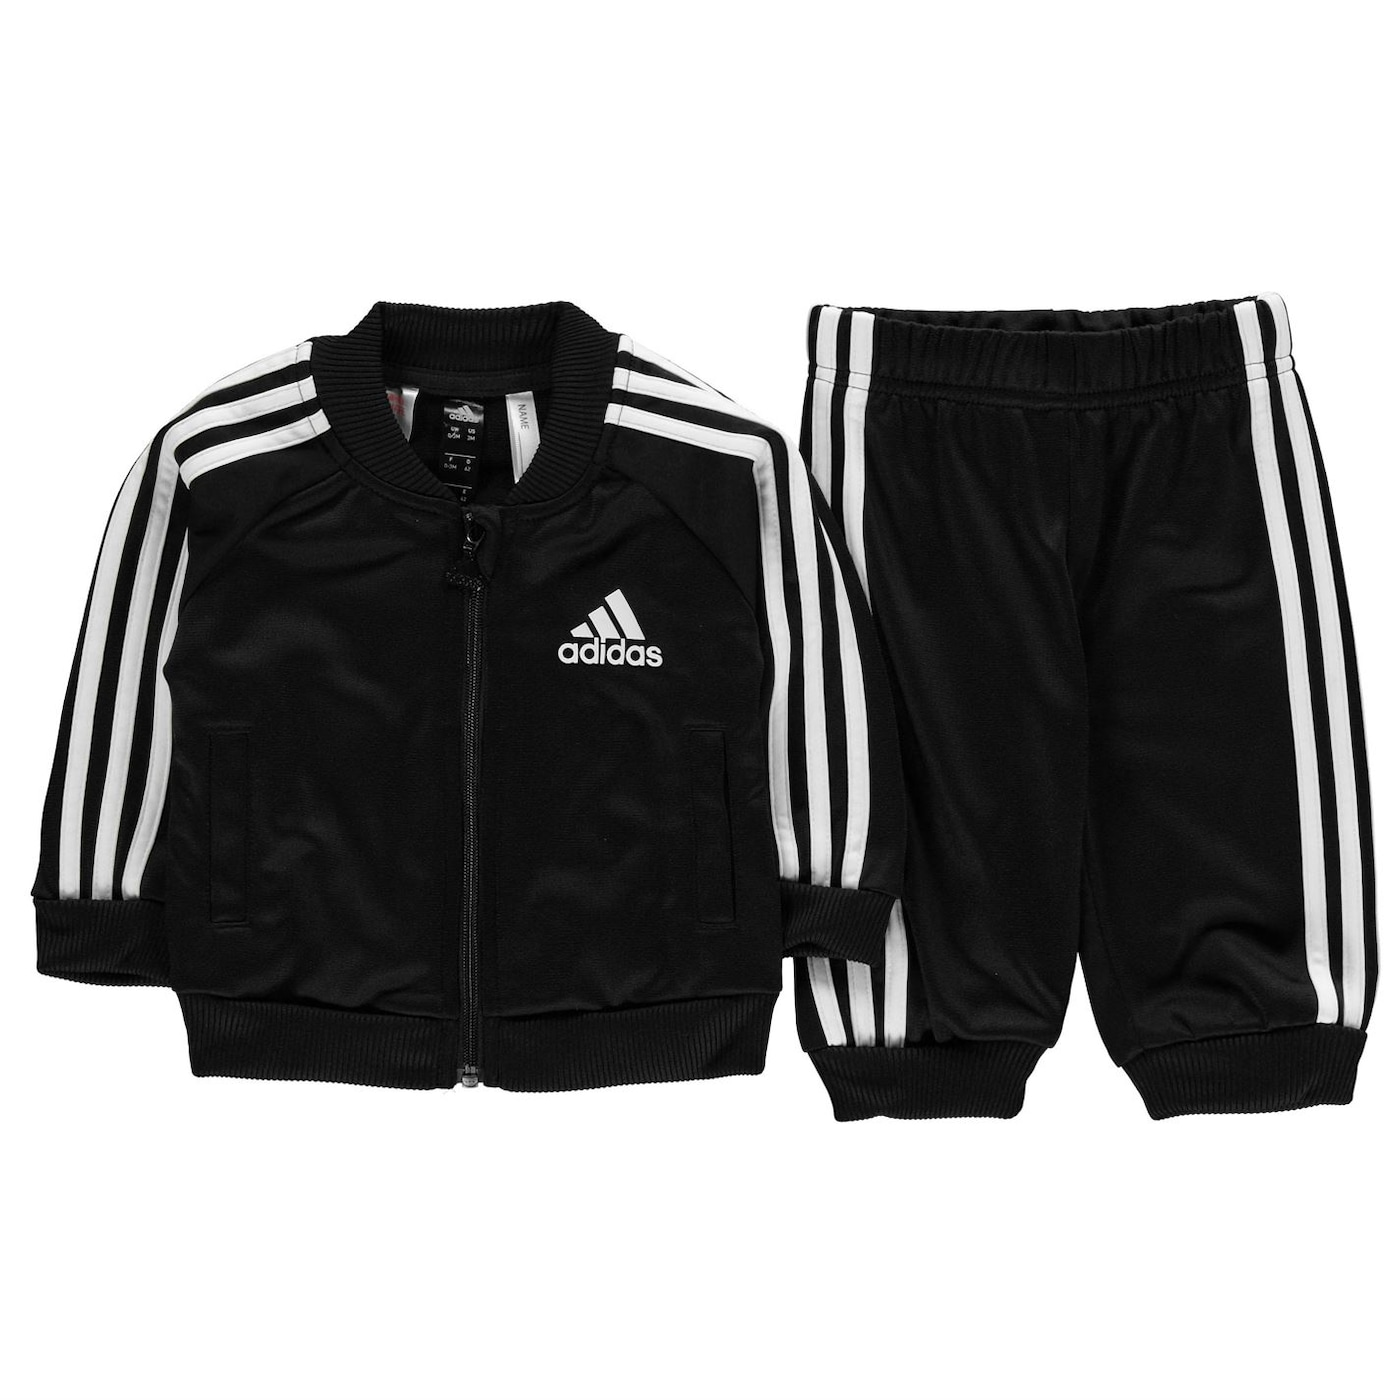 Adidas 3S Poly Track Suit Infant Boys